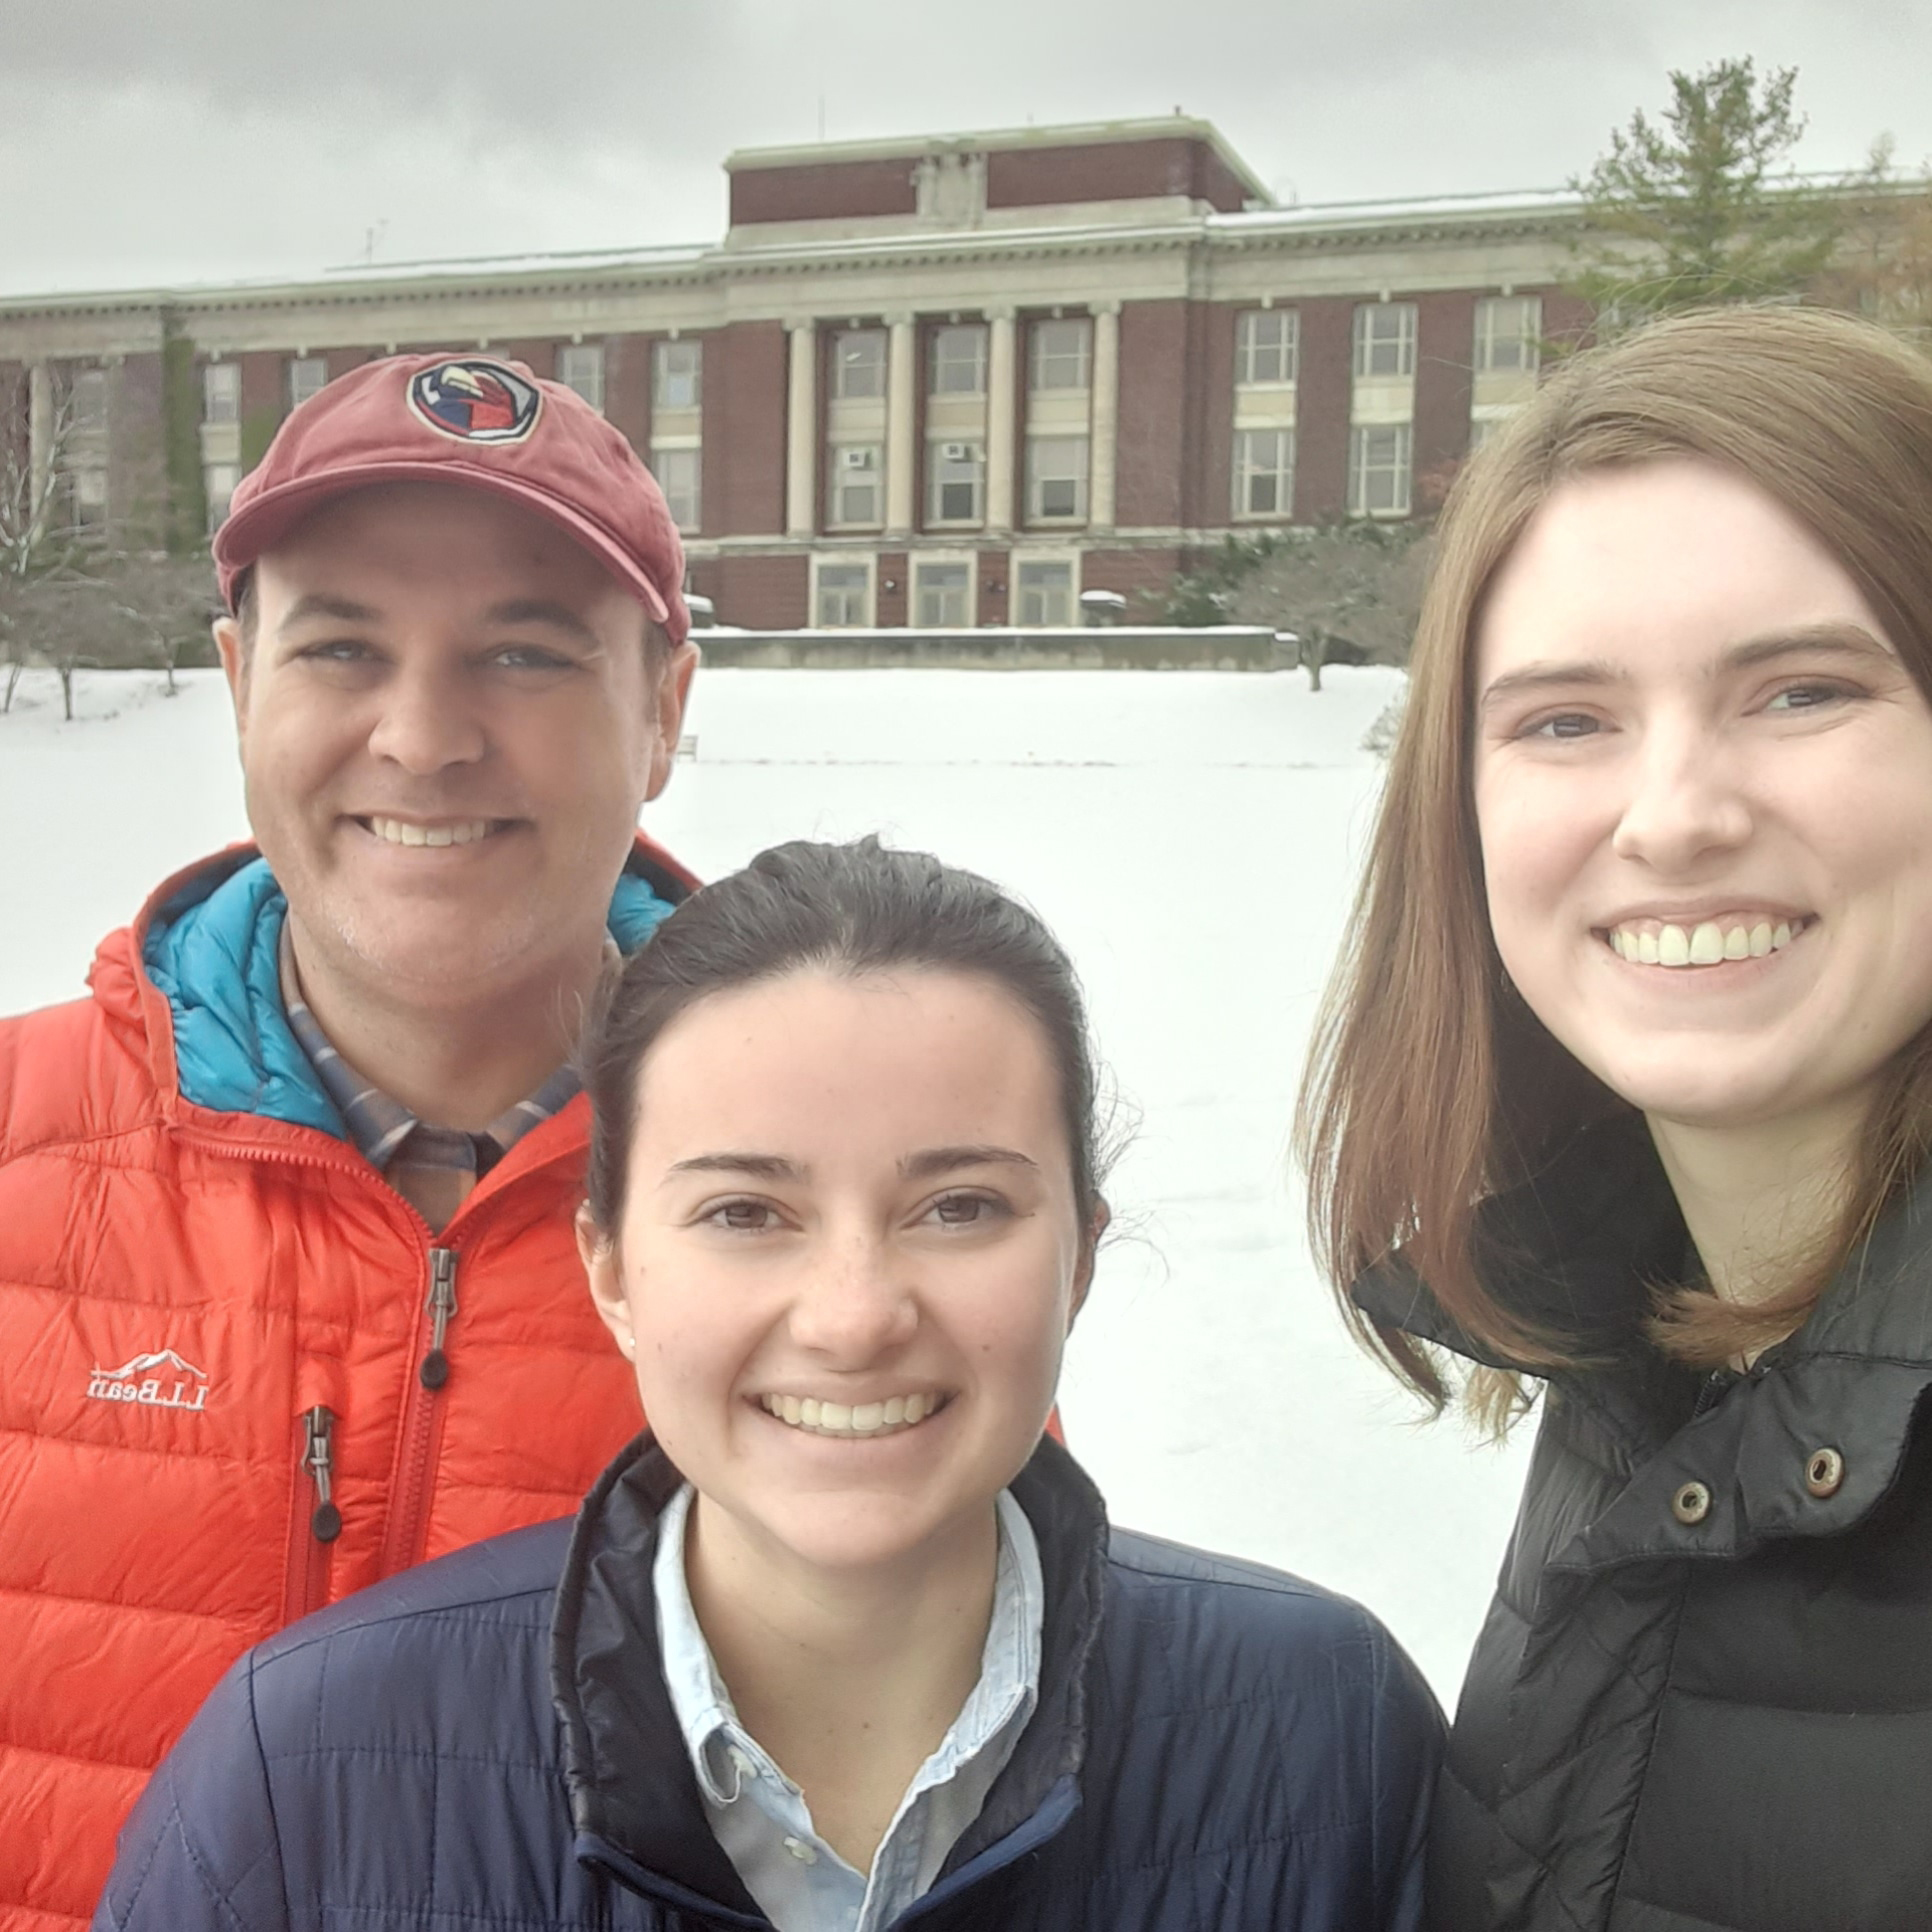 three people standing in the snow with a brick building in the back